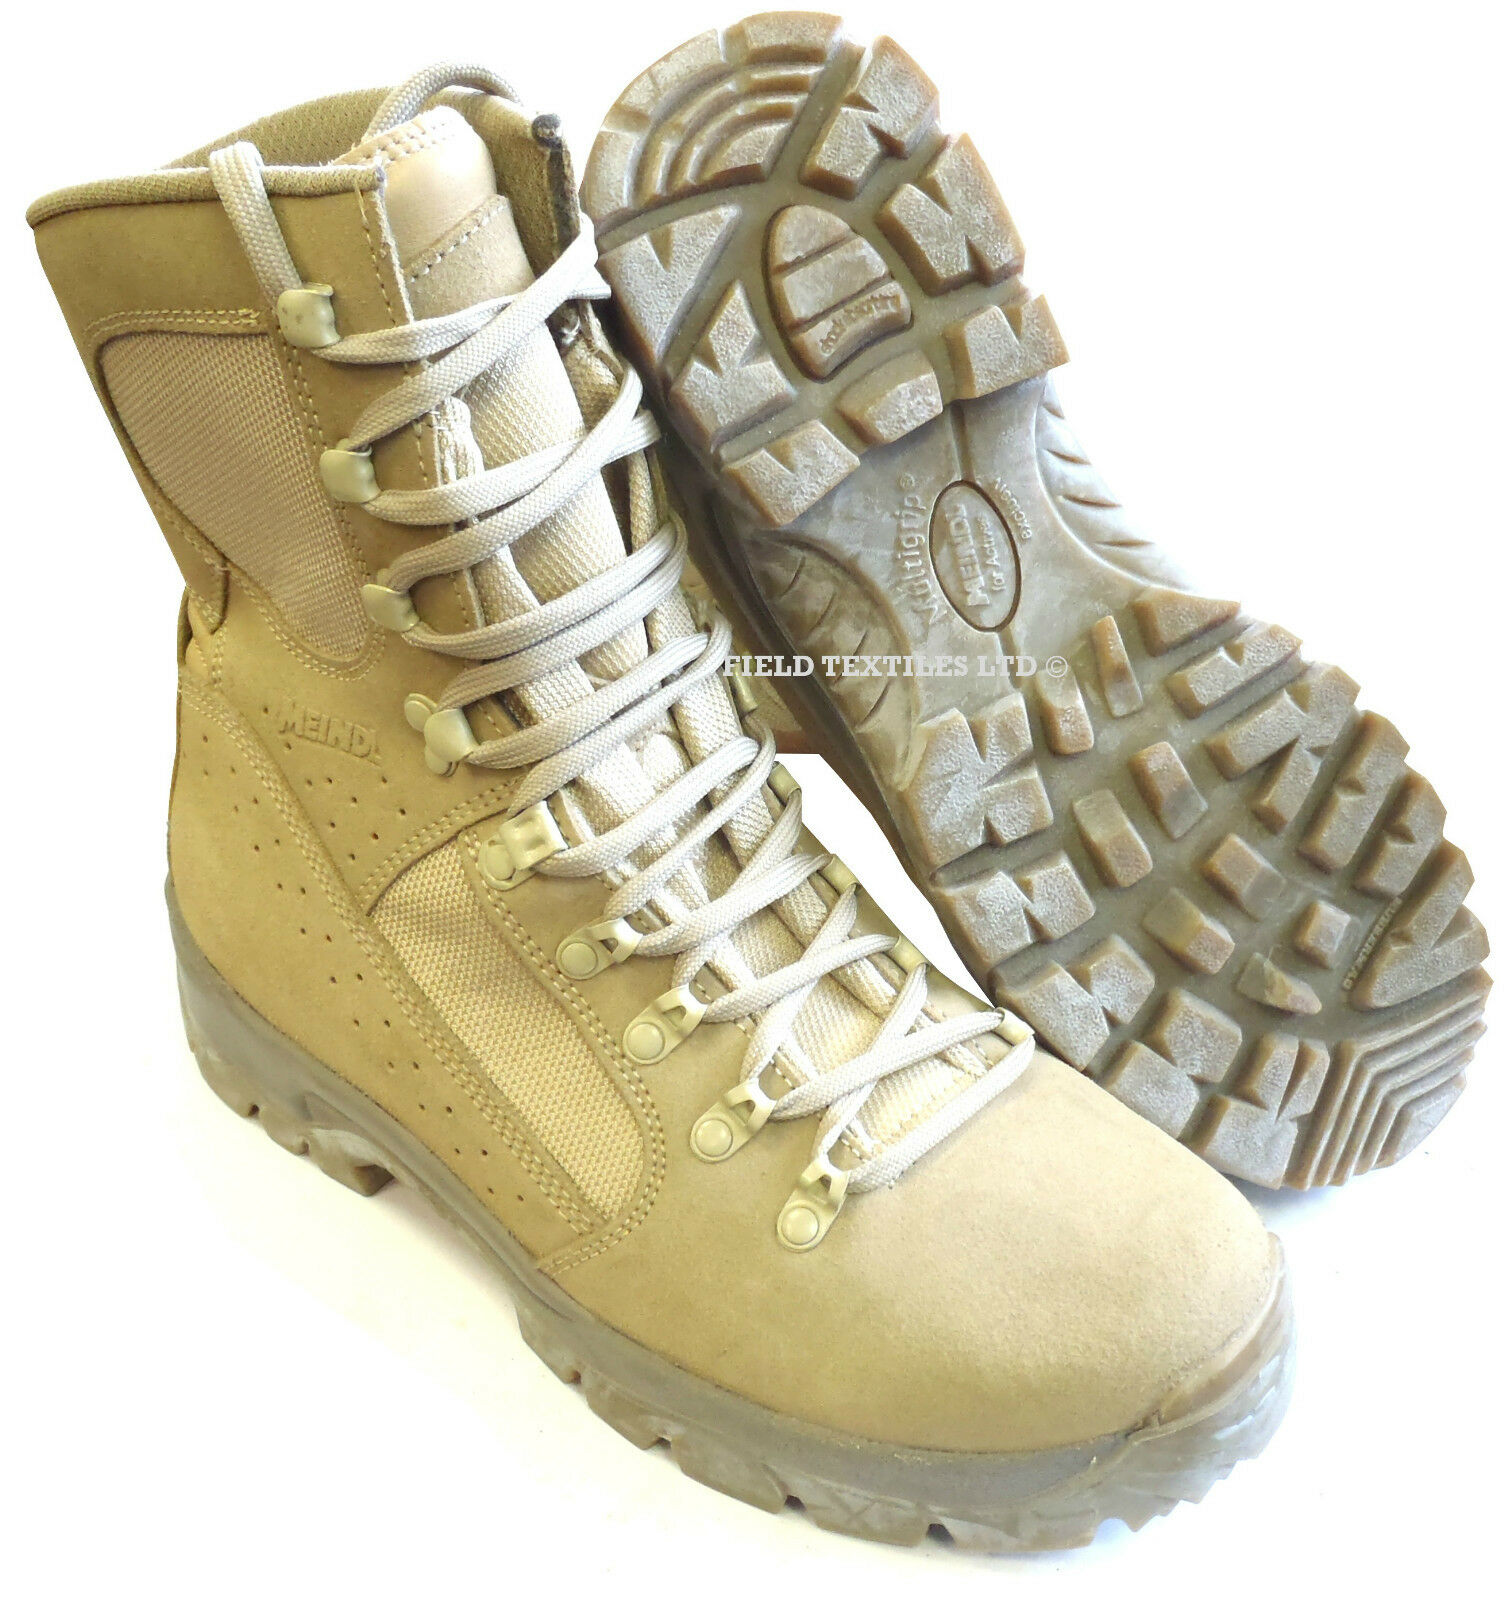 British Army-MEINDL Fox Desert Boots-VARIE Boots-VARIE Desert DIUomoIONI GRANDE-NUOVO IN SCATOLA 923060